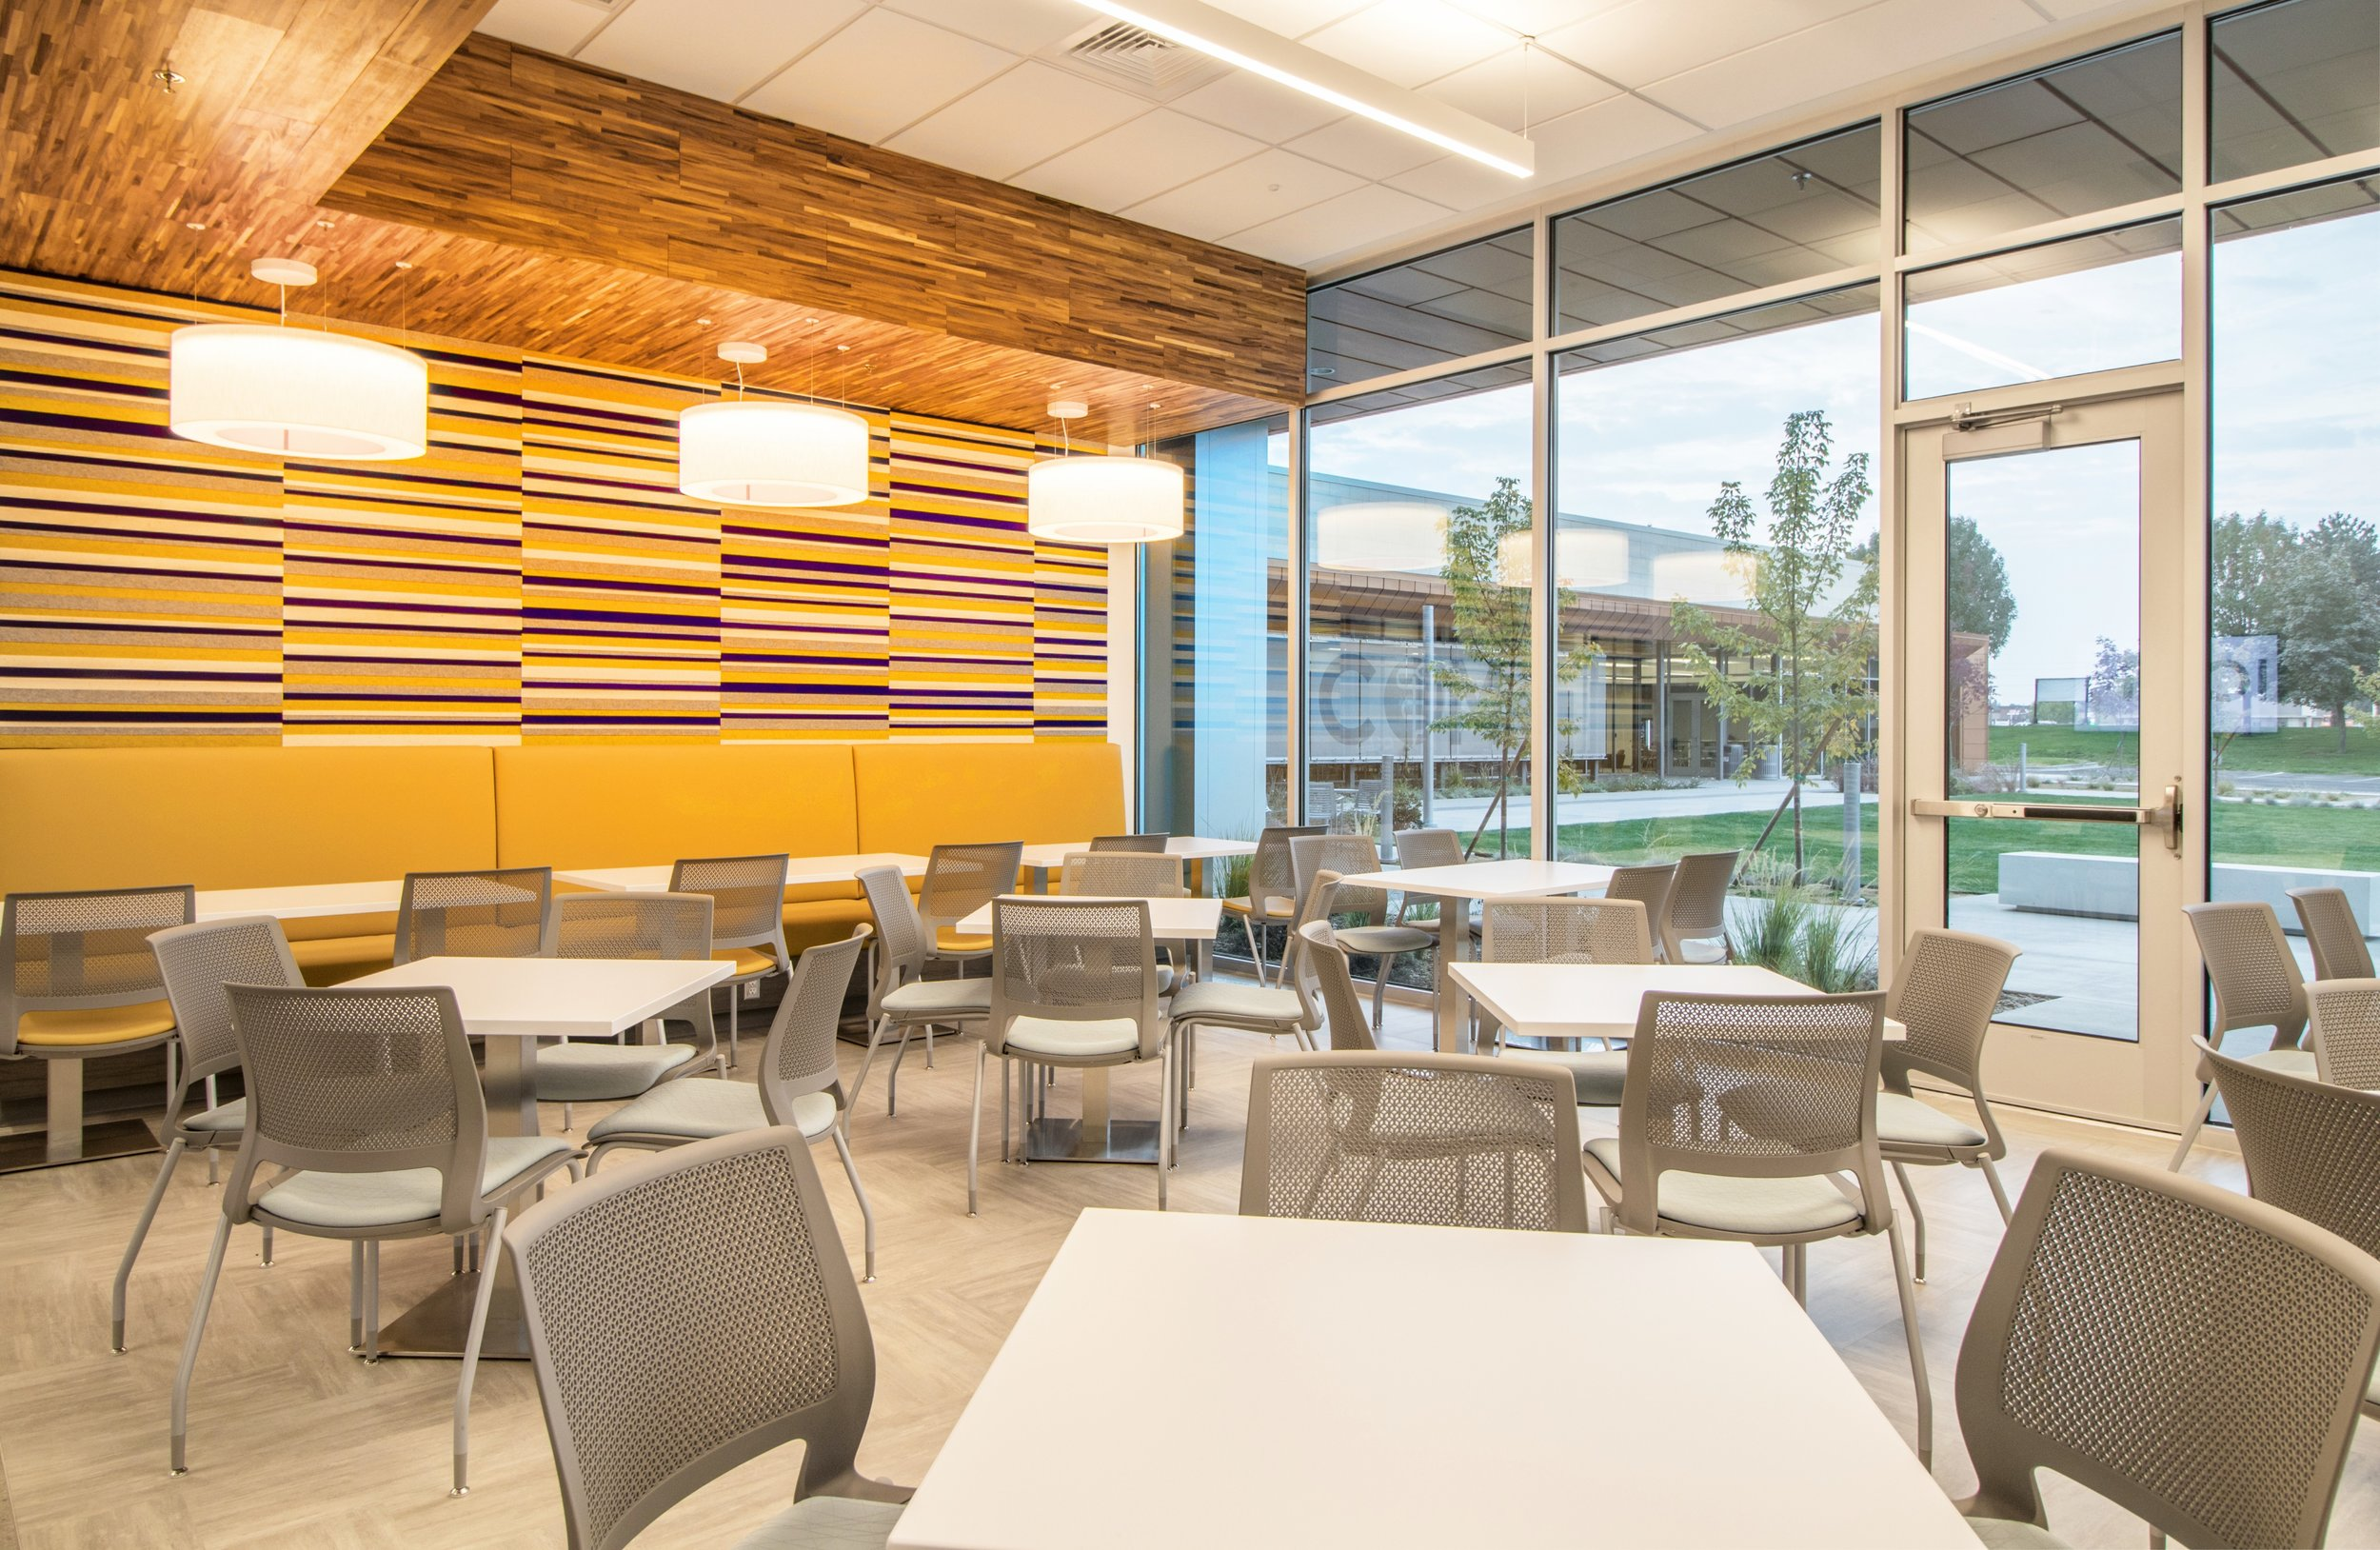 Student lounge 2  - 662 sq ft space with bar top, high-top and soft seating. Lounge has microwaves, refrigerators, food vending and cabinets.